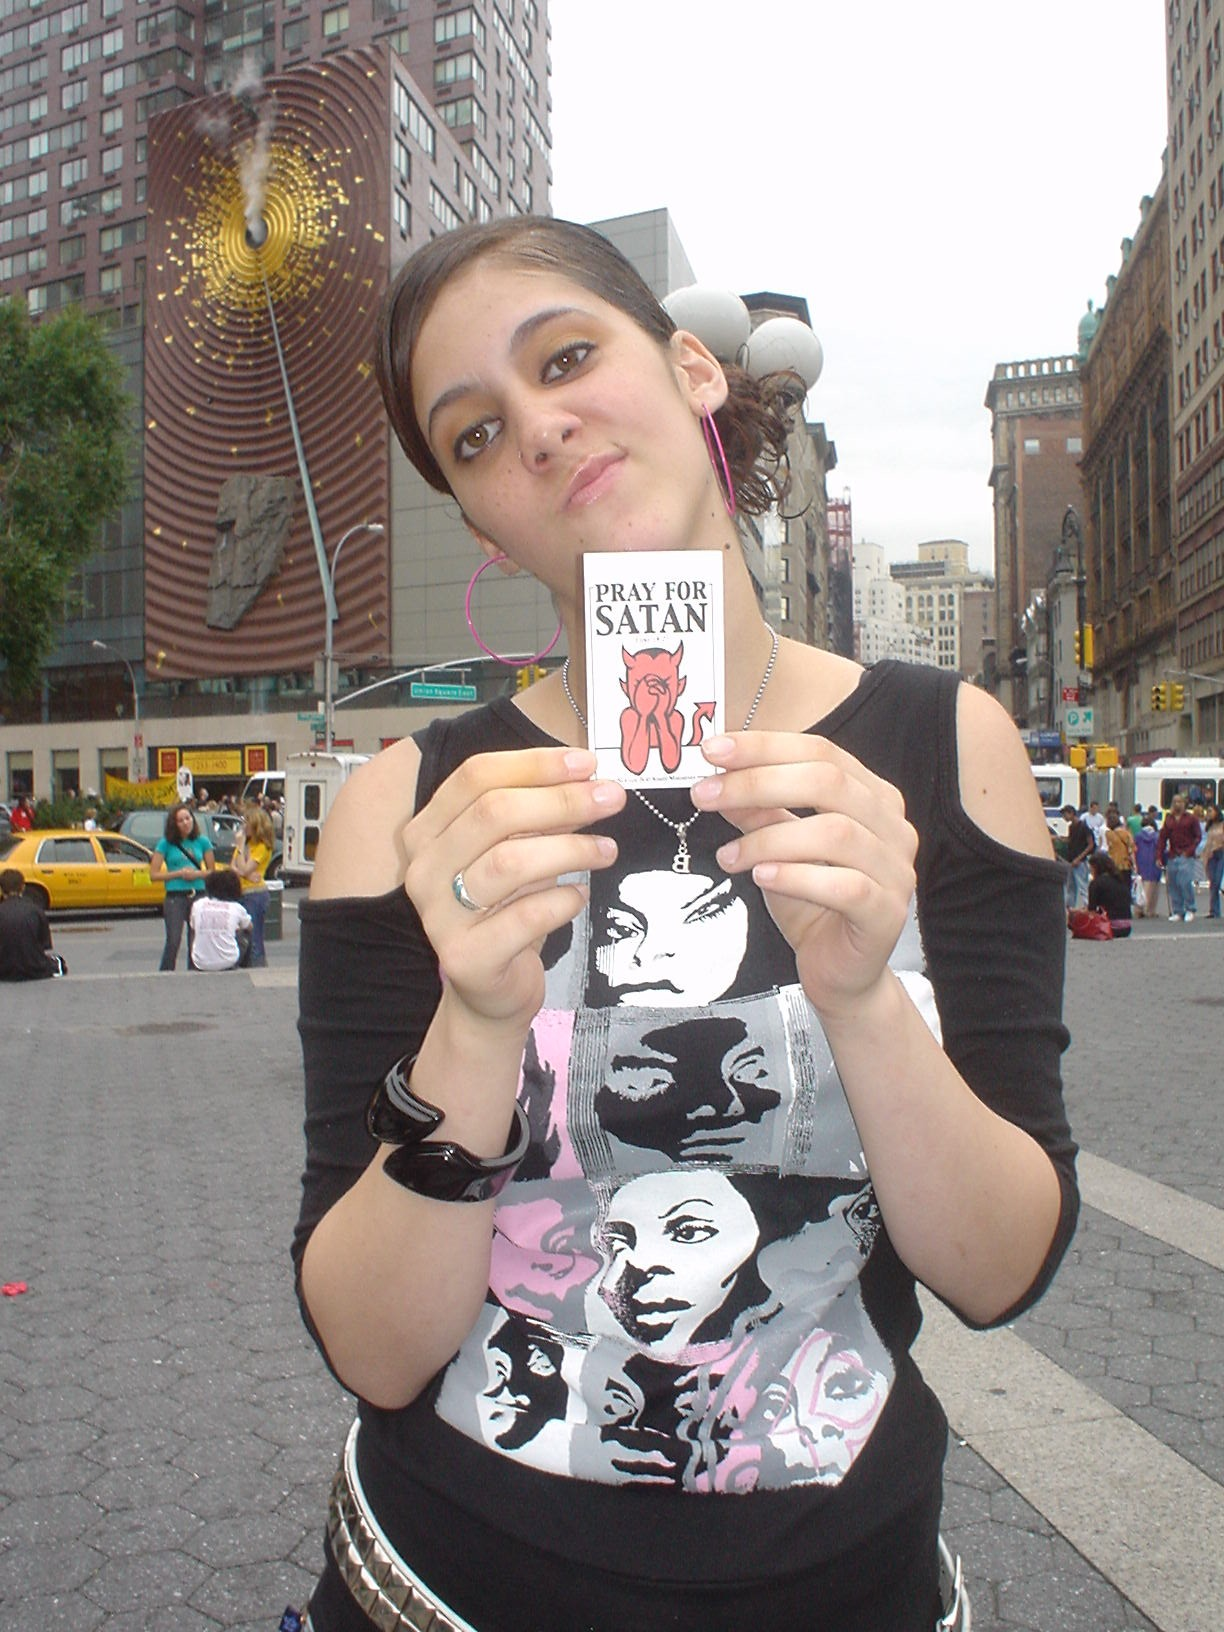 hood rat holding one of my PRAY FOR SATAN flyers